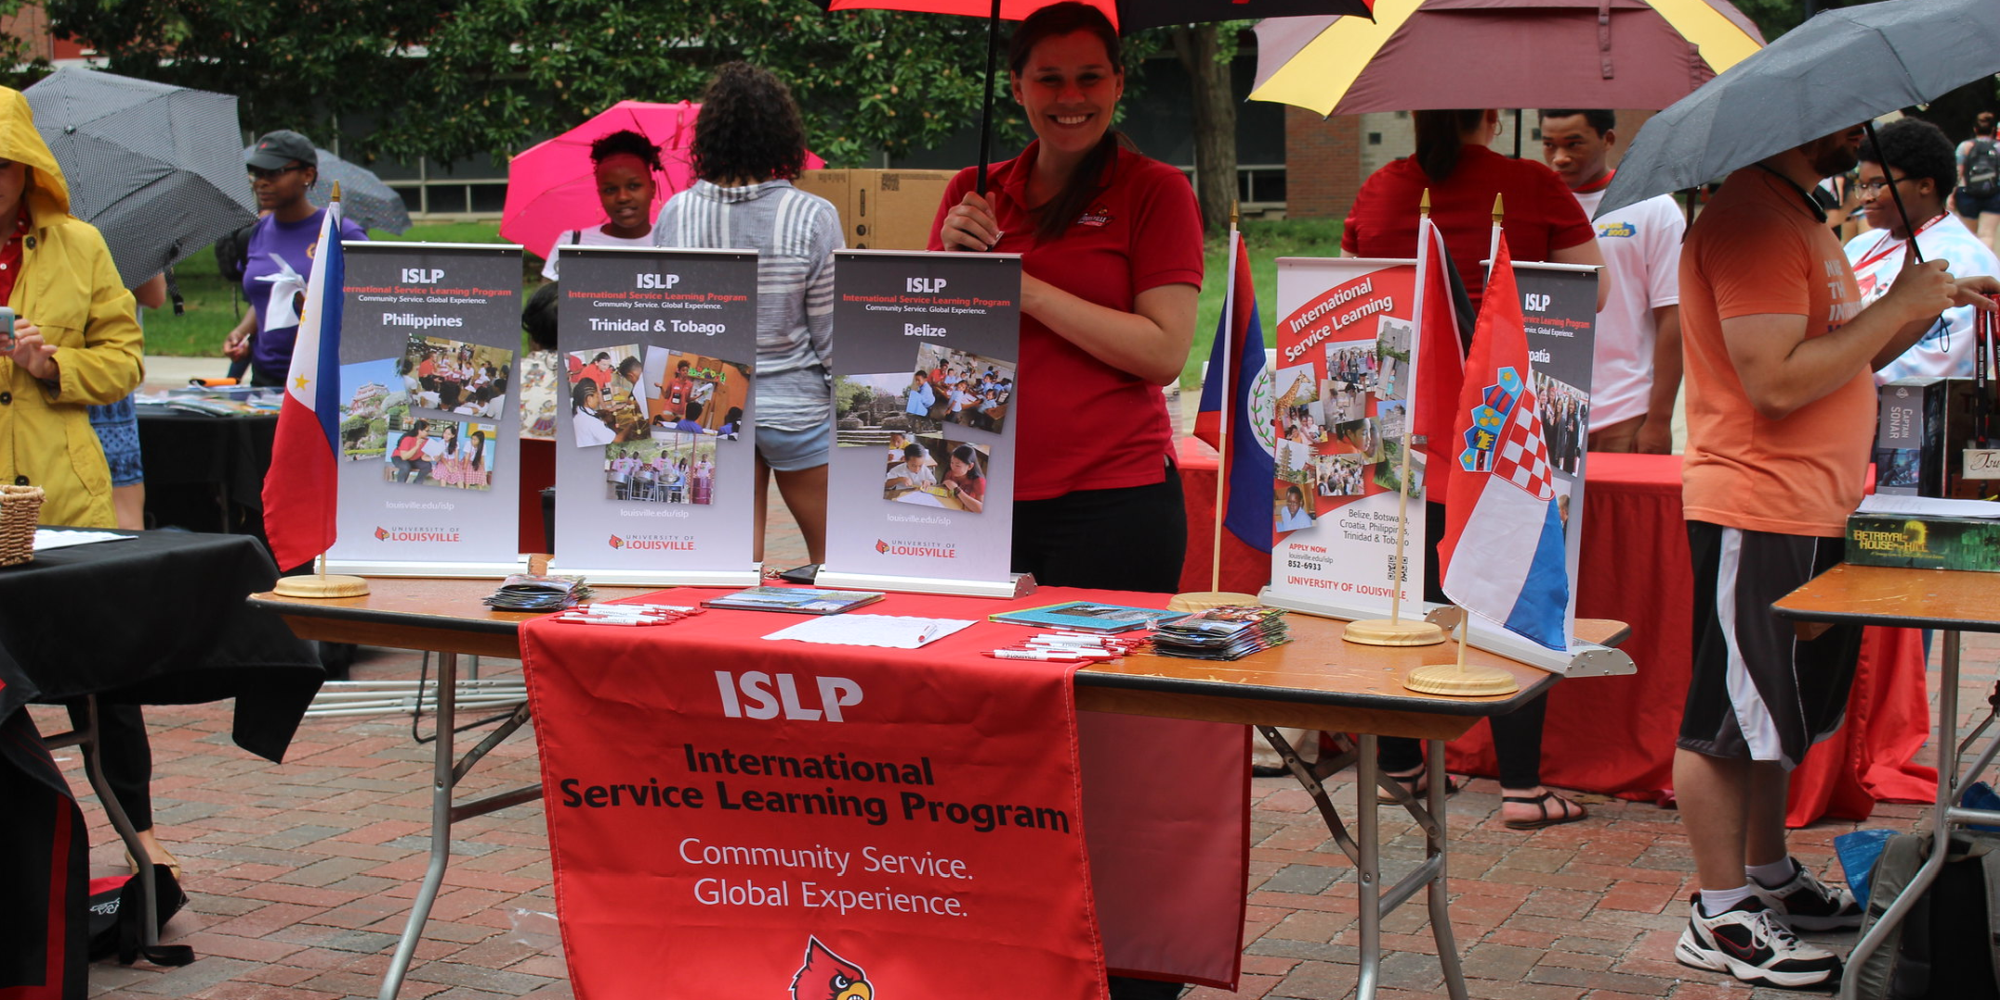 I.S.L.P. table at the R.S.O fair displaying information on visiting other countries.